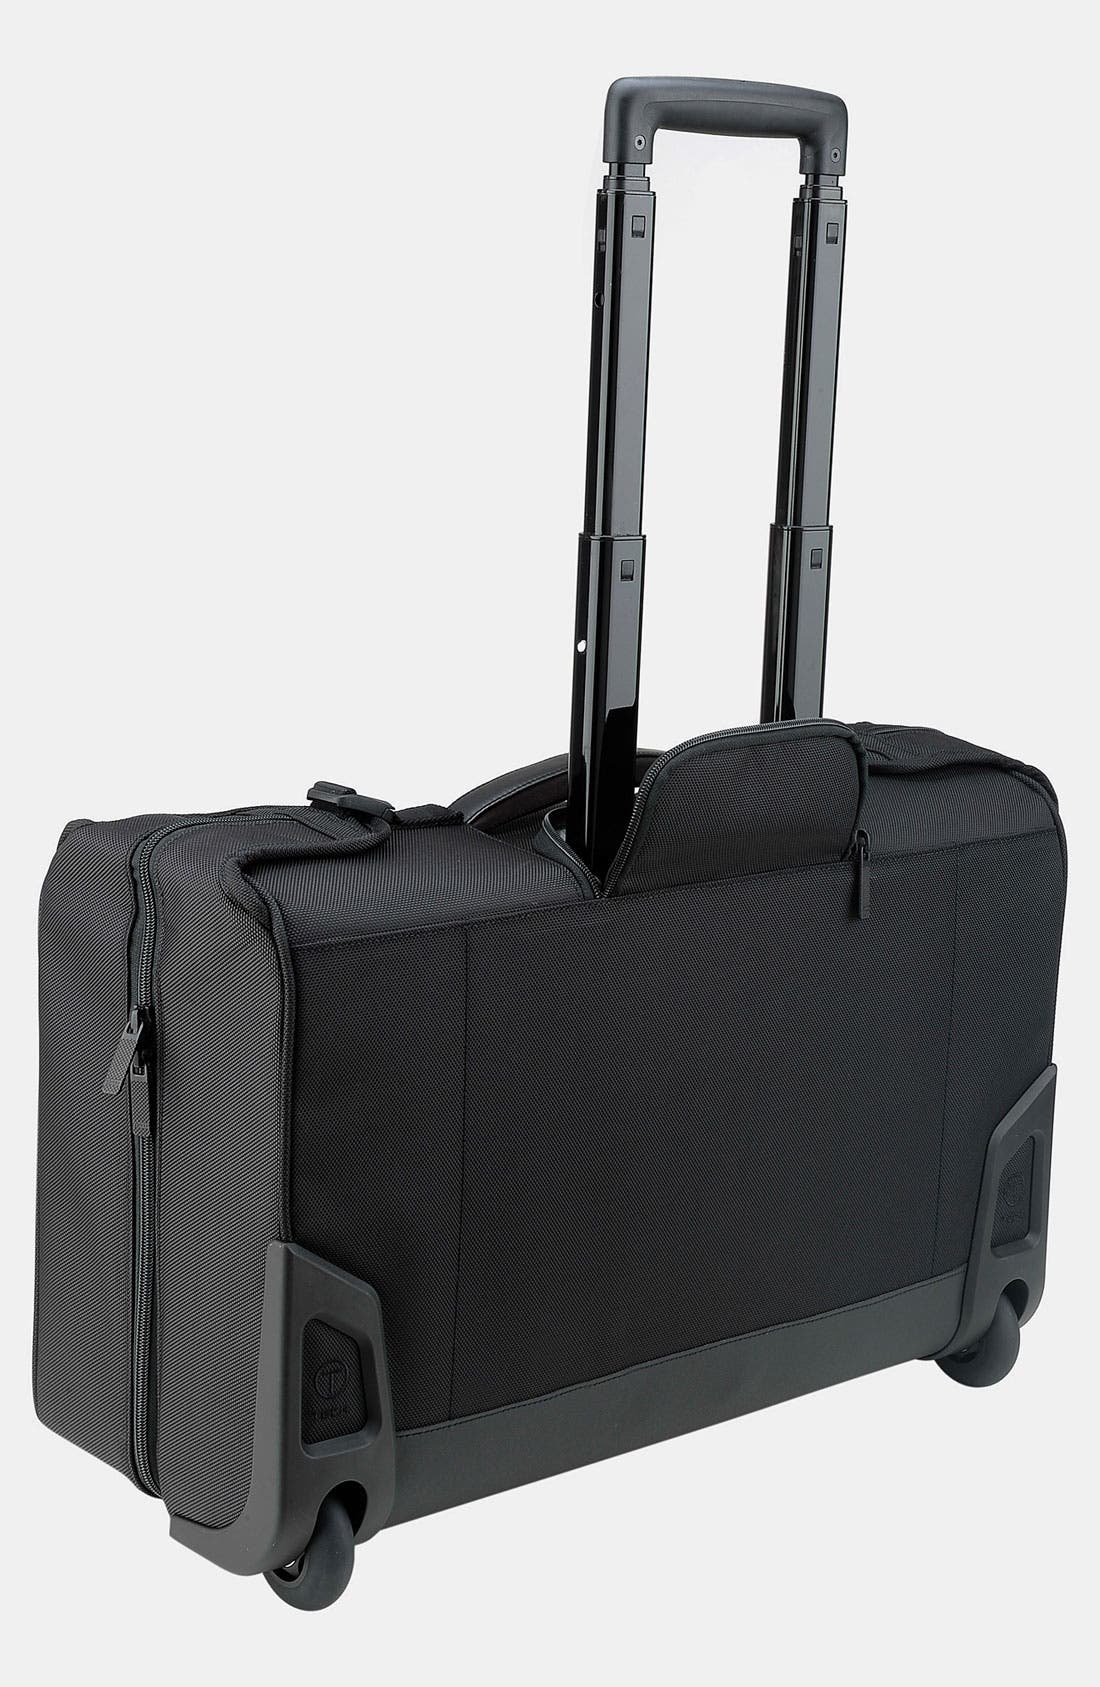 Alternate Image 2  - Tumi 'T-Tech Network' Wheeled Carry-On Garment Bag (22 Inch)